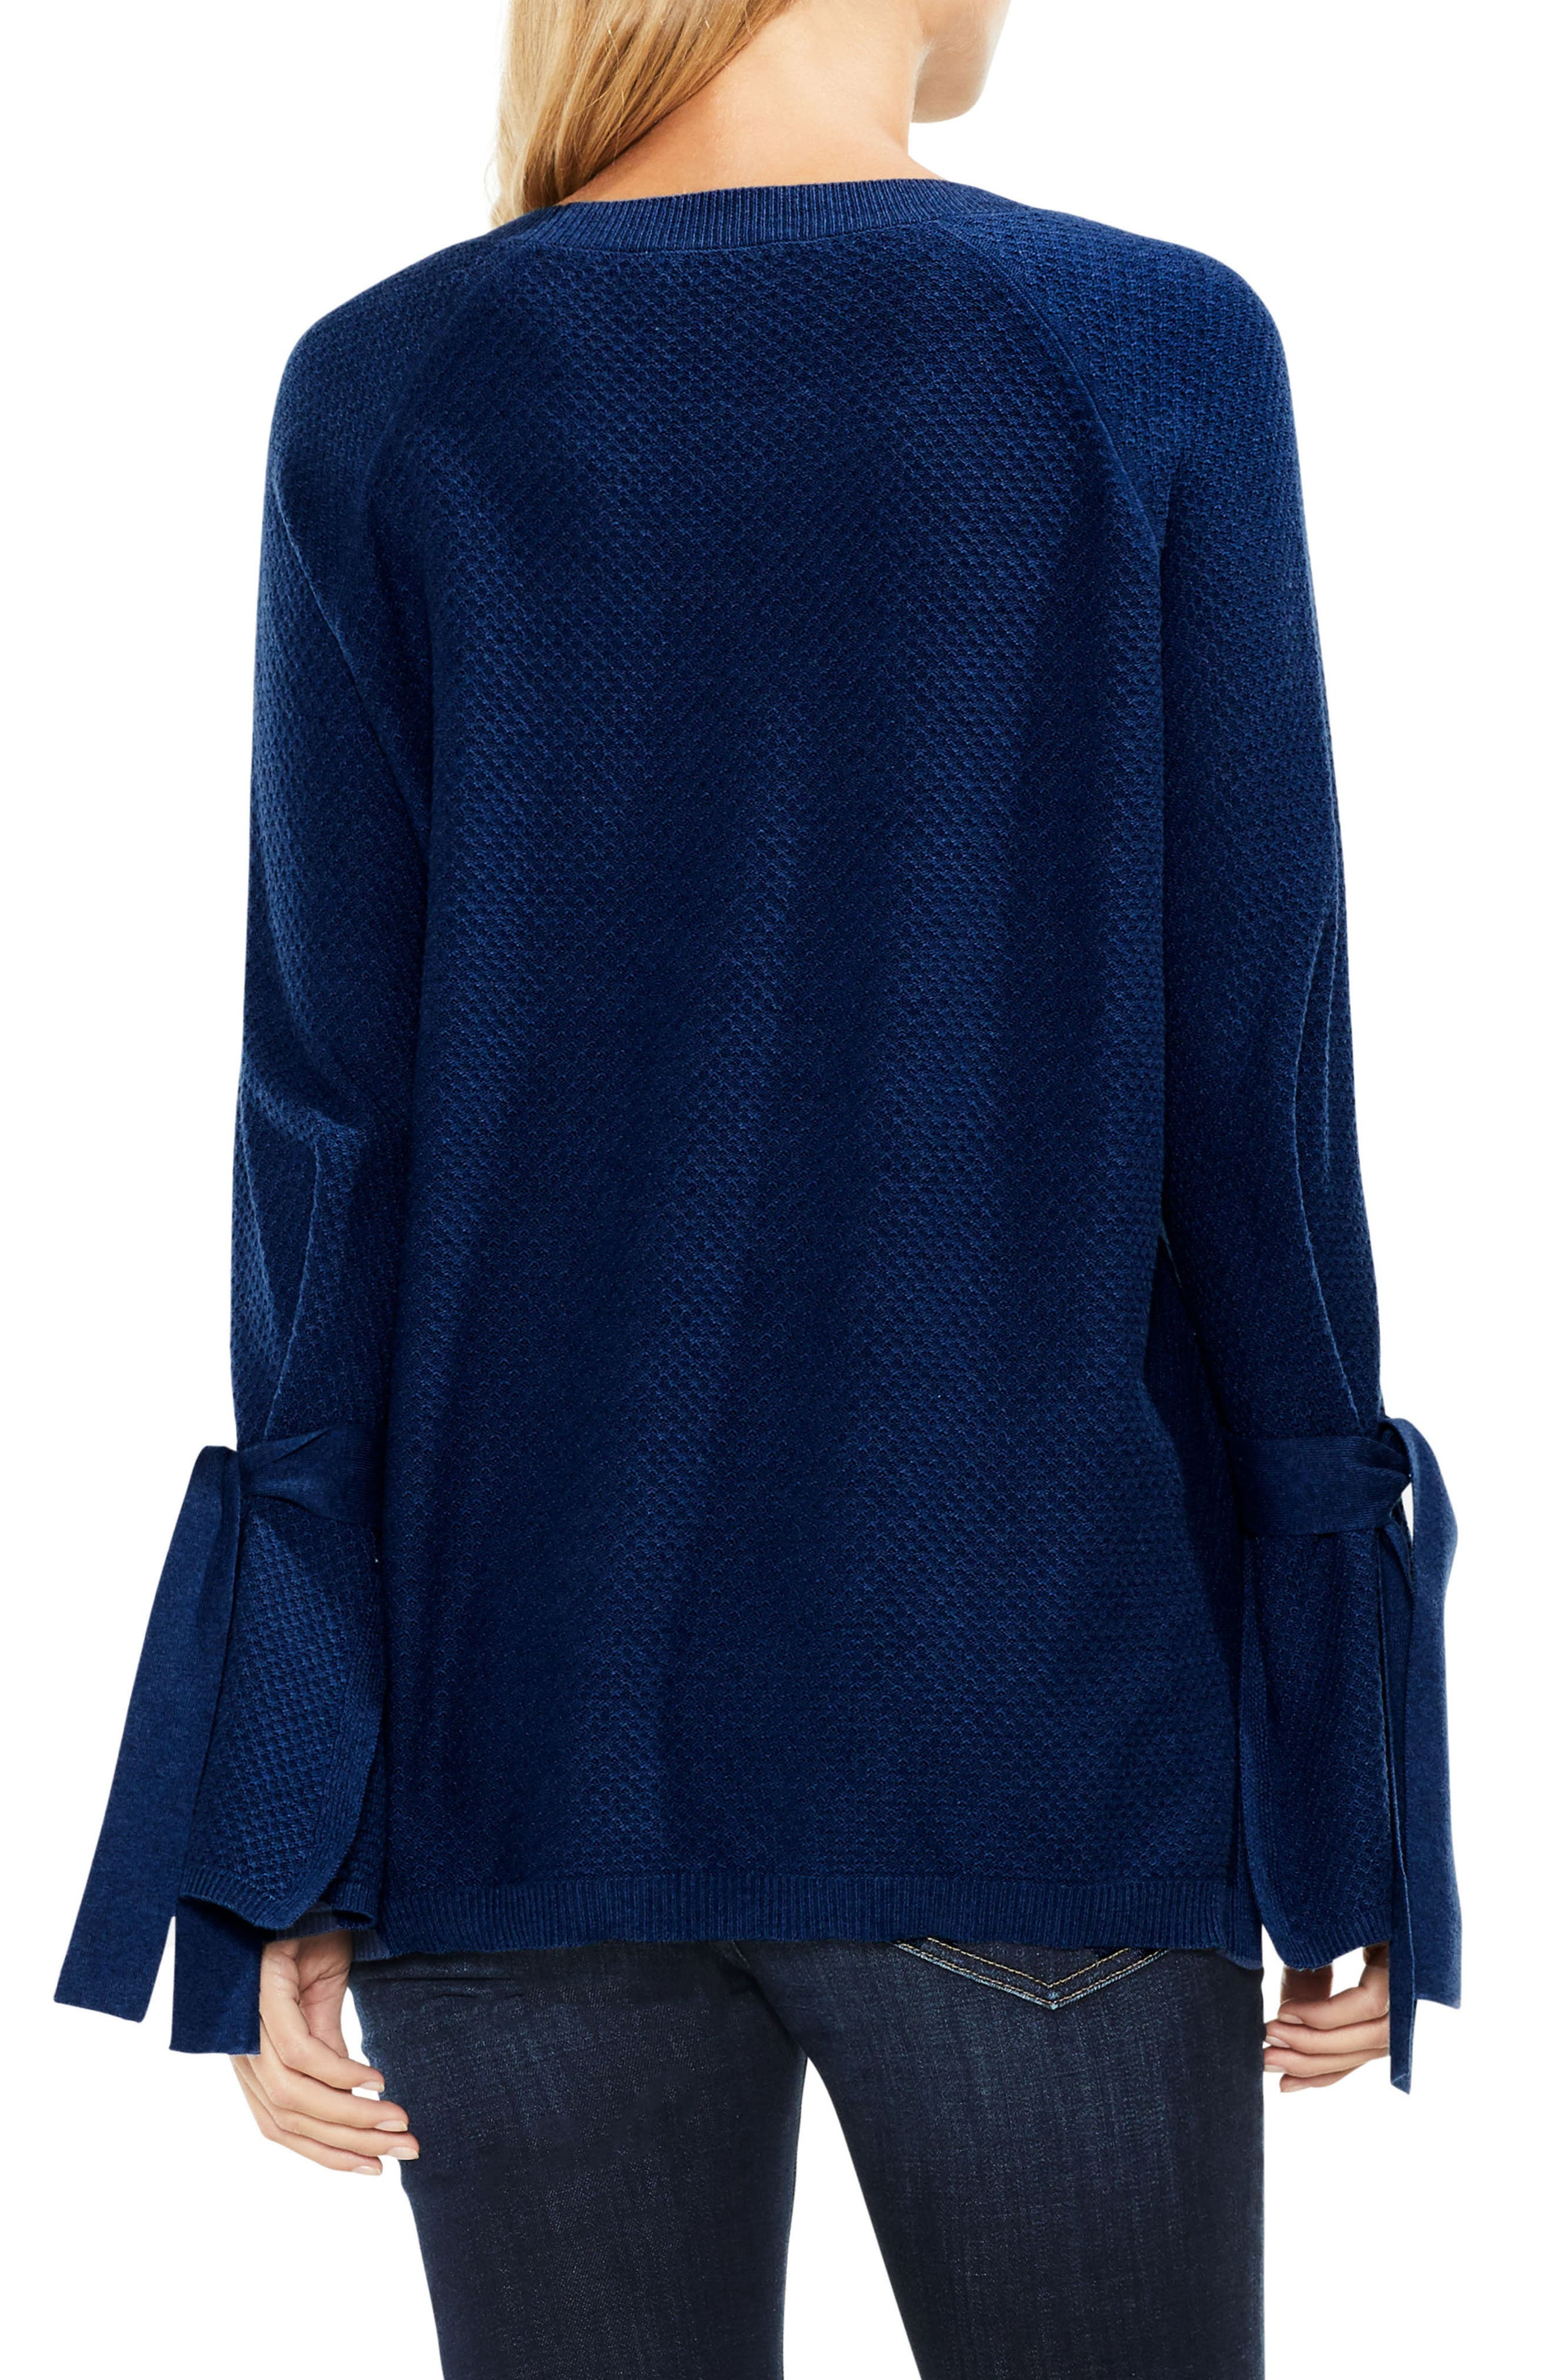 Alternate Image 2  - Two by Vince Camuto Texture Stitch Tie-Sleeve Top (Regular & Petite)